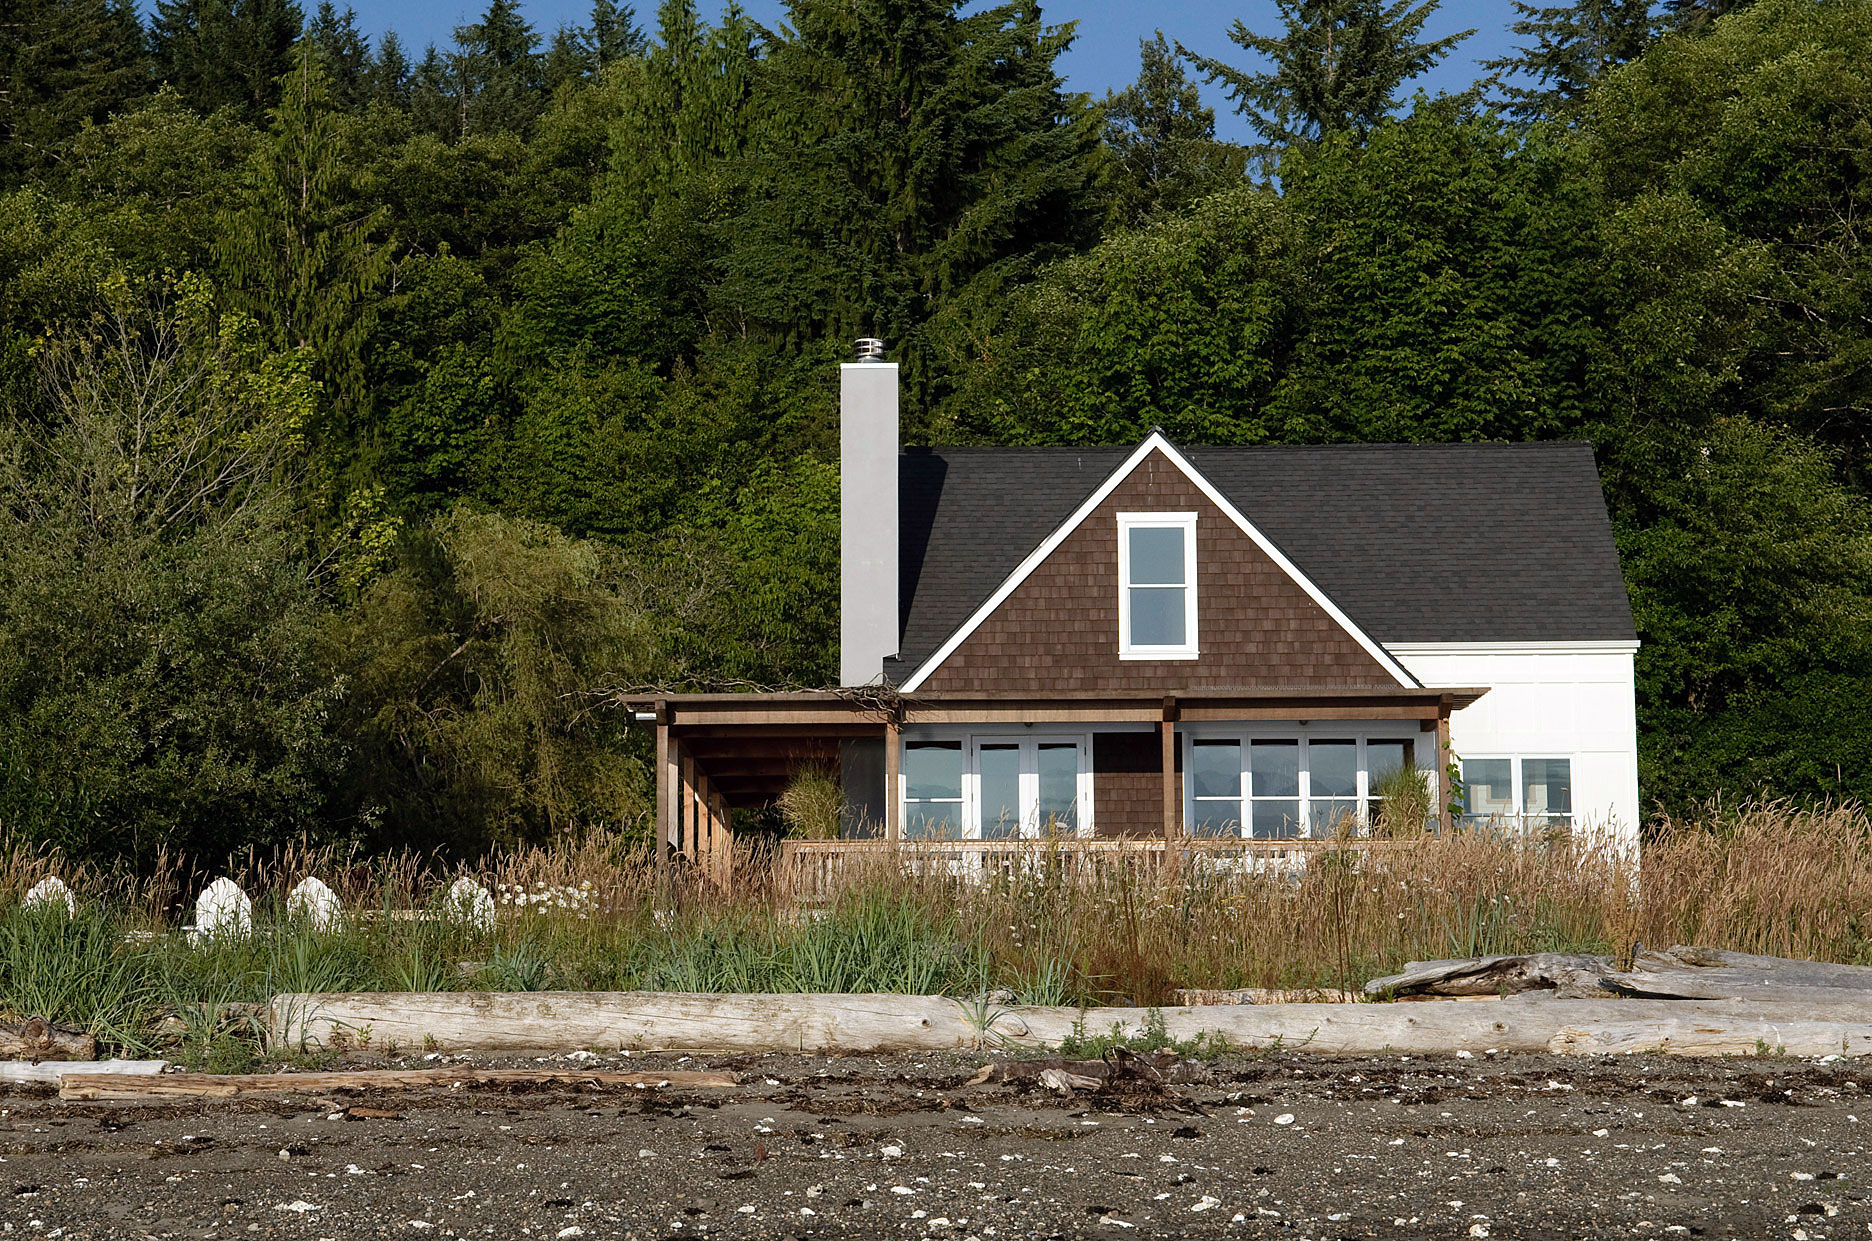 Beach Cottage Holly Wa Rohleder Borges Architecture